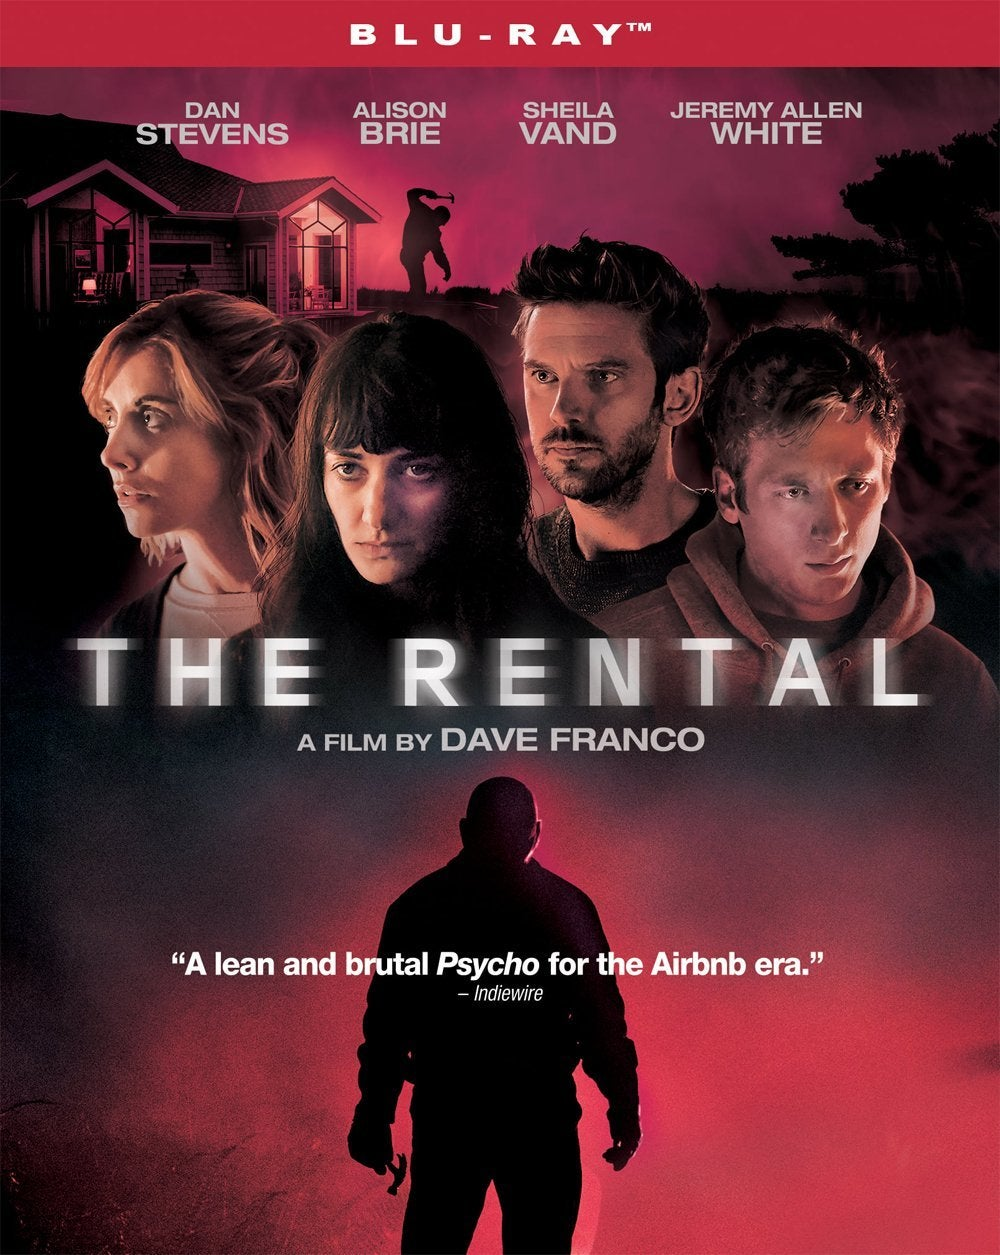 the rental movie blu ray cover